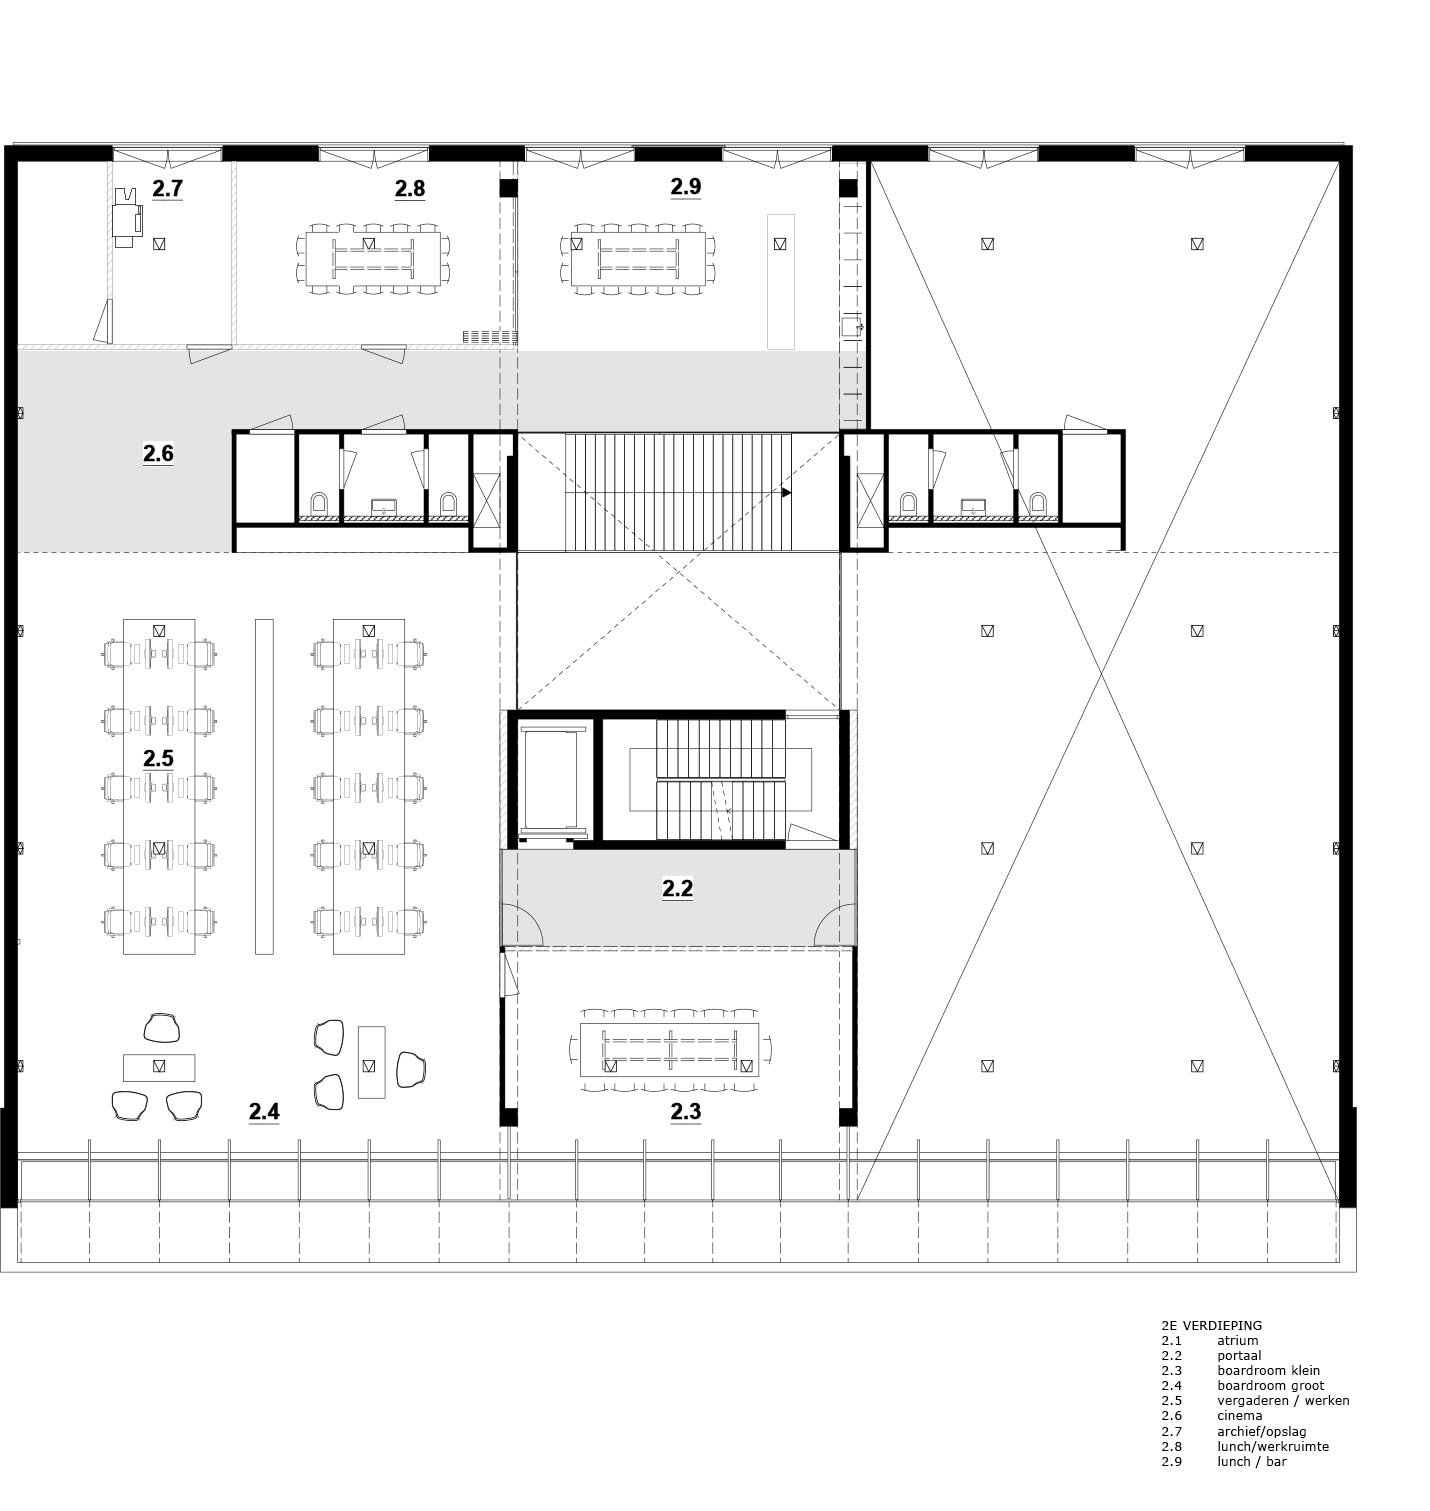 Office 05 i29 interior architects architecture lab for Office interior design questionnaire for clients